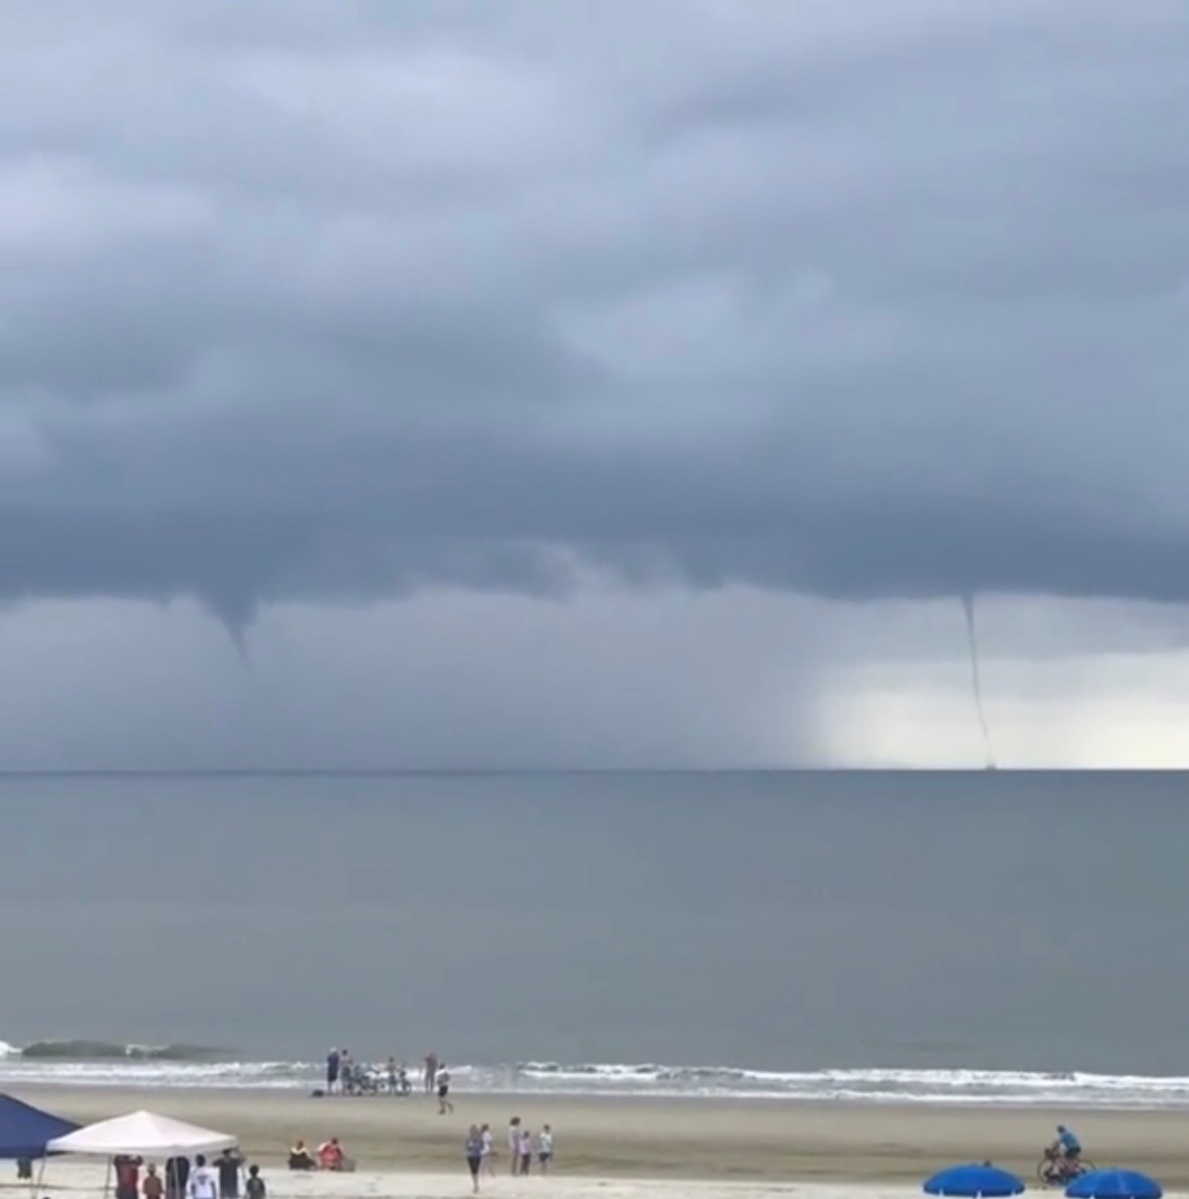 Water Spouts On Hilton Head Island